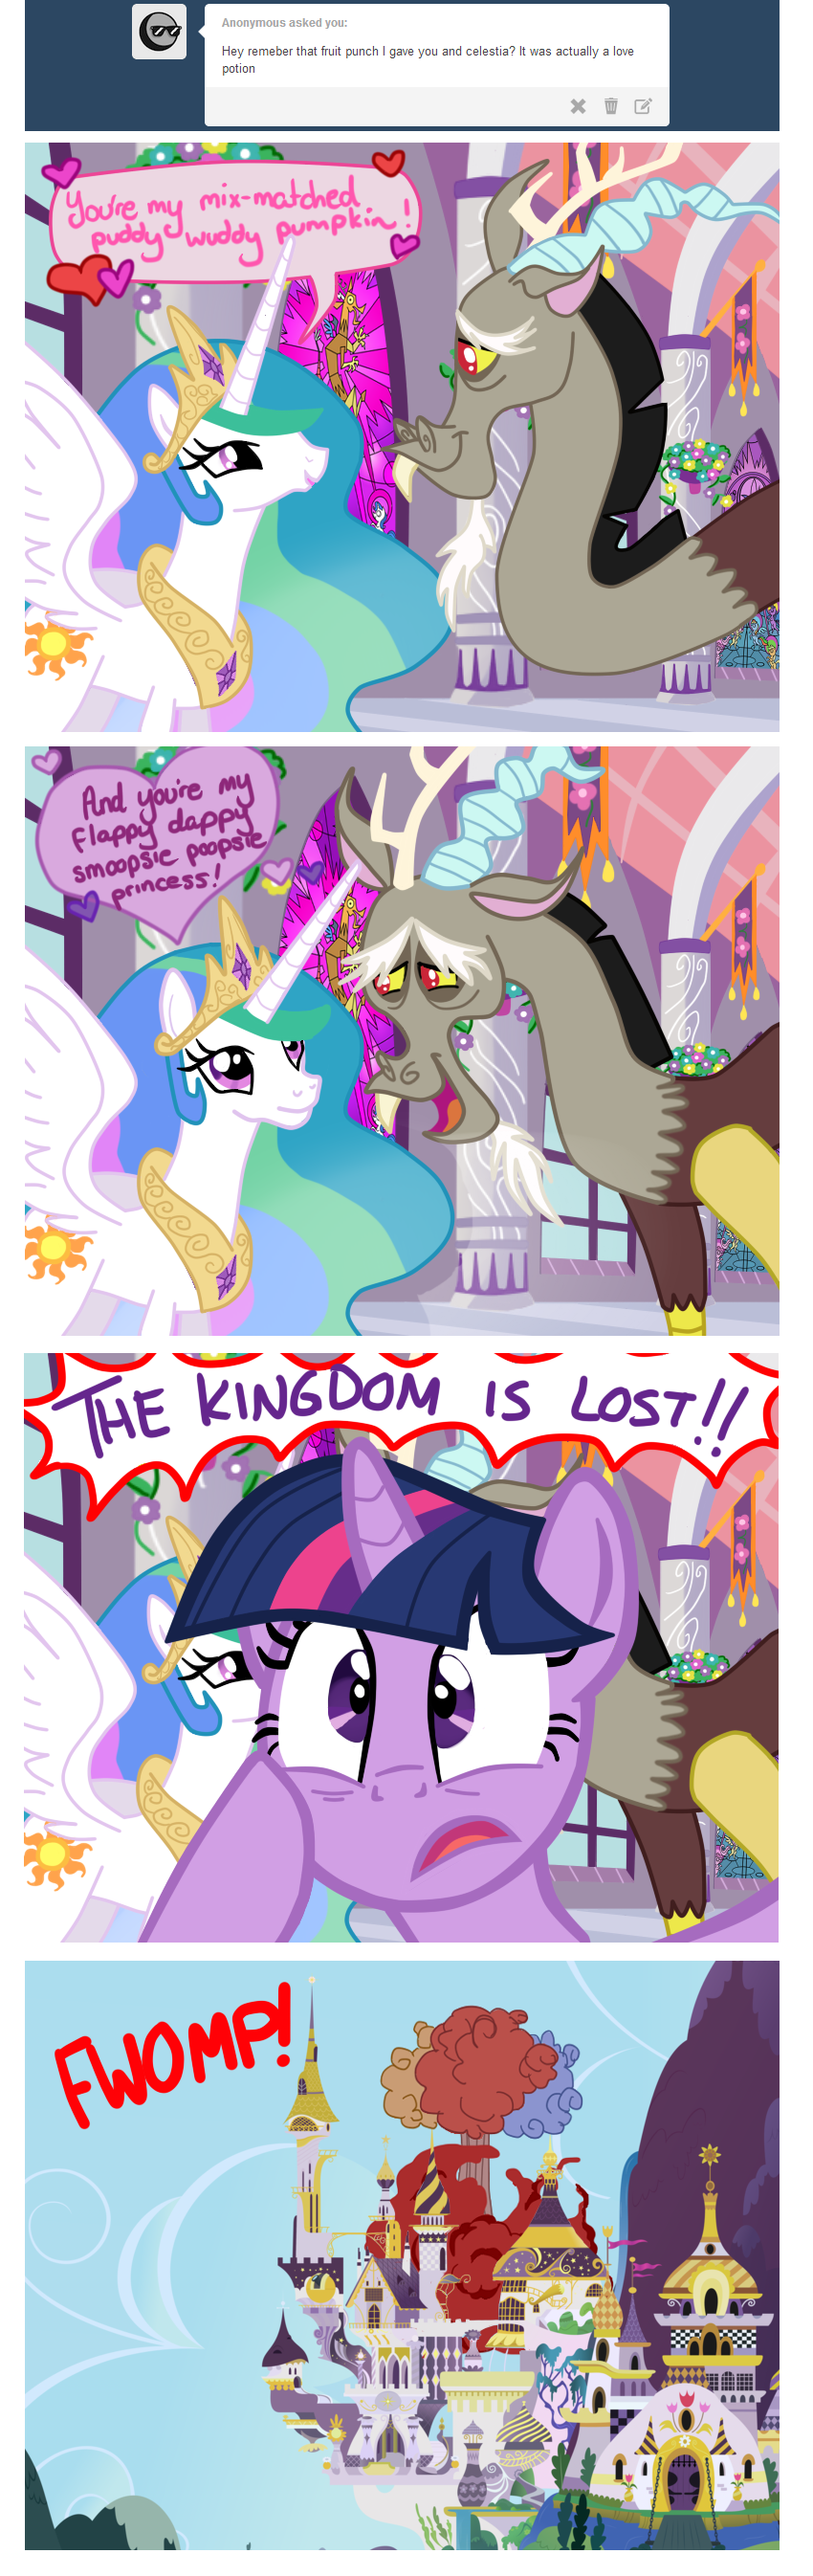 Twilight Sparkle And Discord In Love #639822 - ask t...